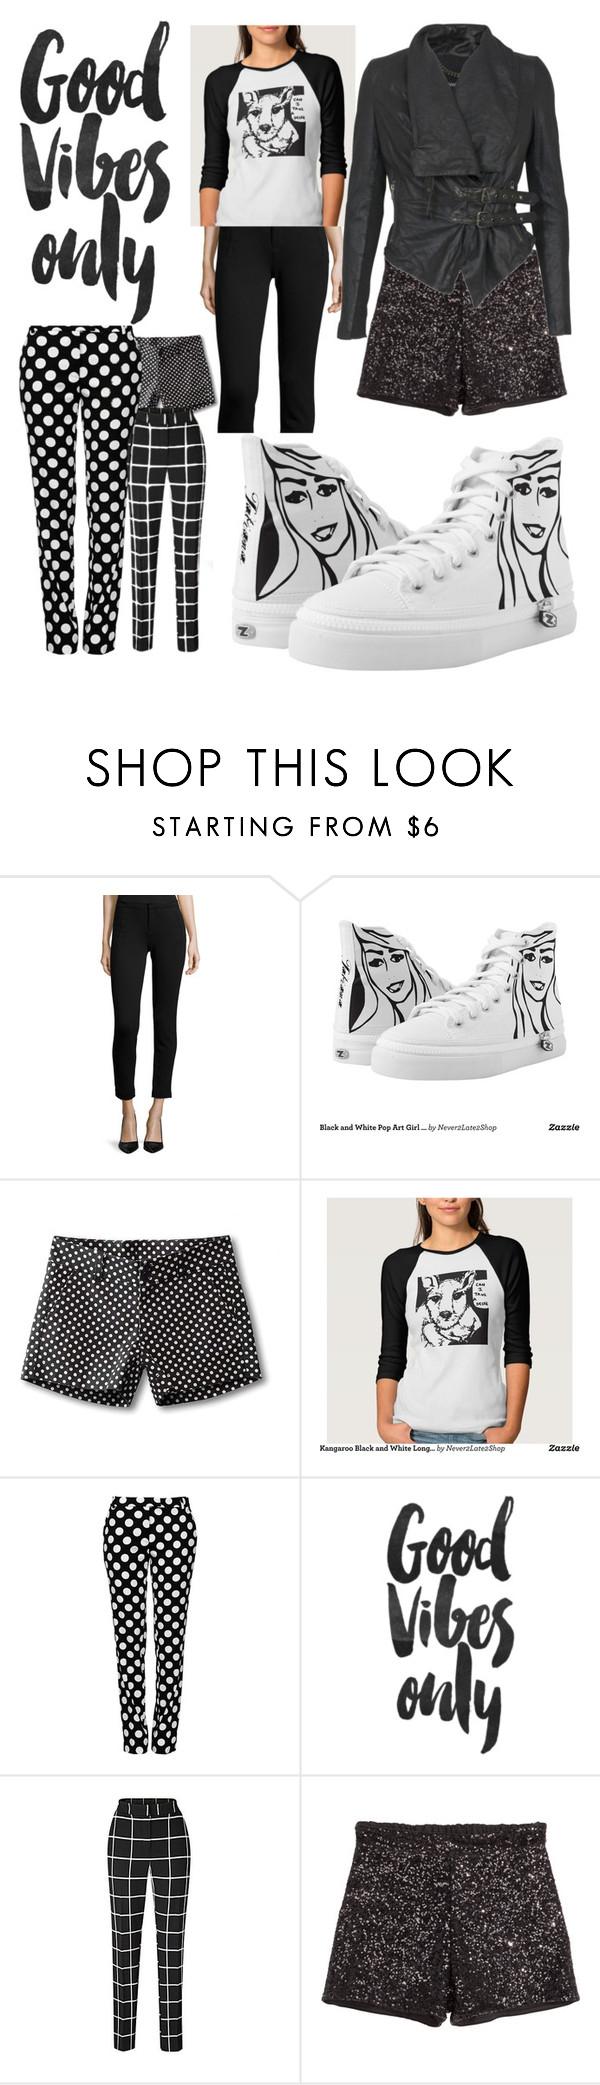 """""""Its only Black and White but I like it"""" by tatianamab ❤ liked on Polyvore featuring Joie, Kavu, Boutique Moschino, H&M and MuuBaa"""